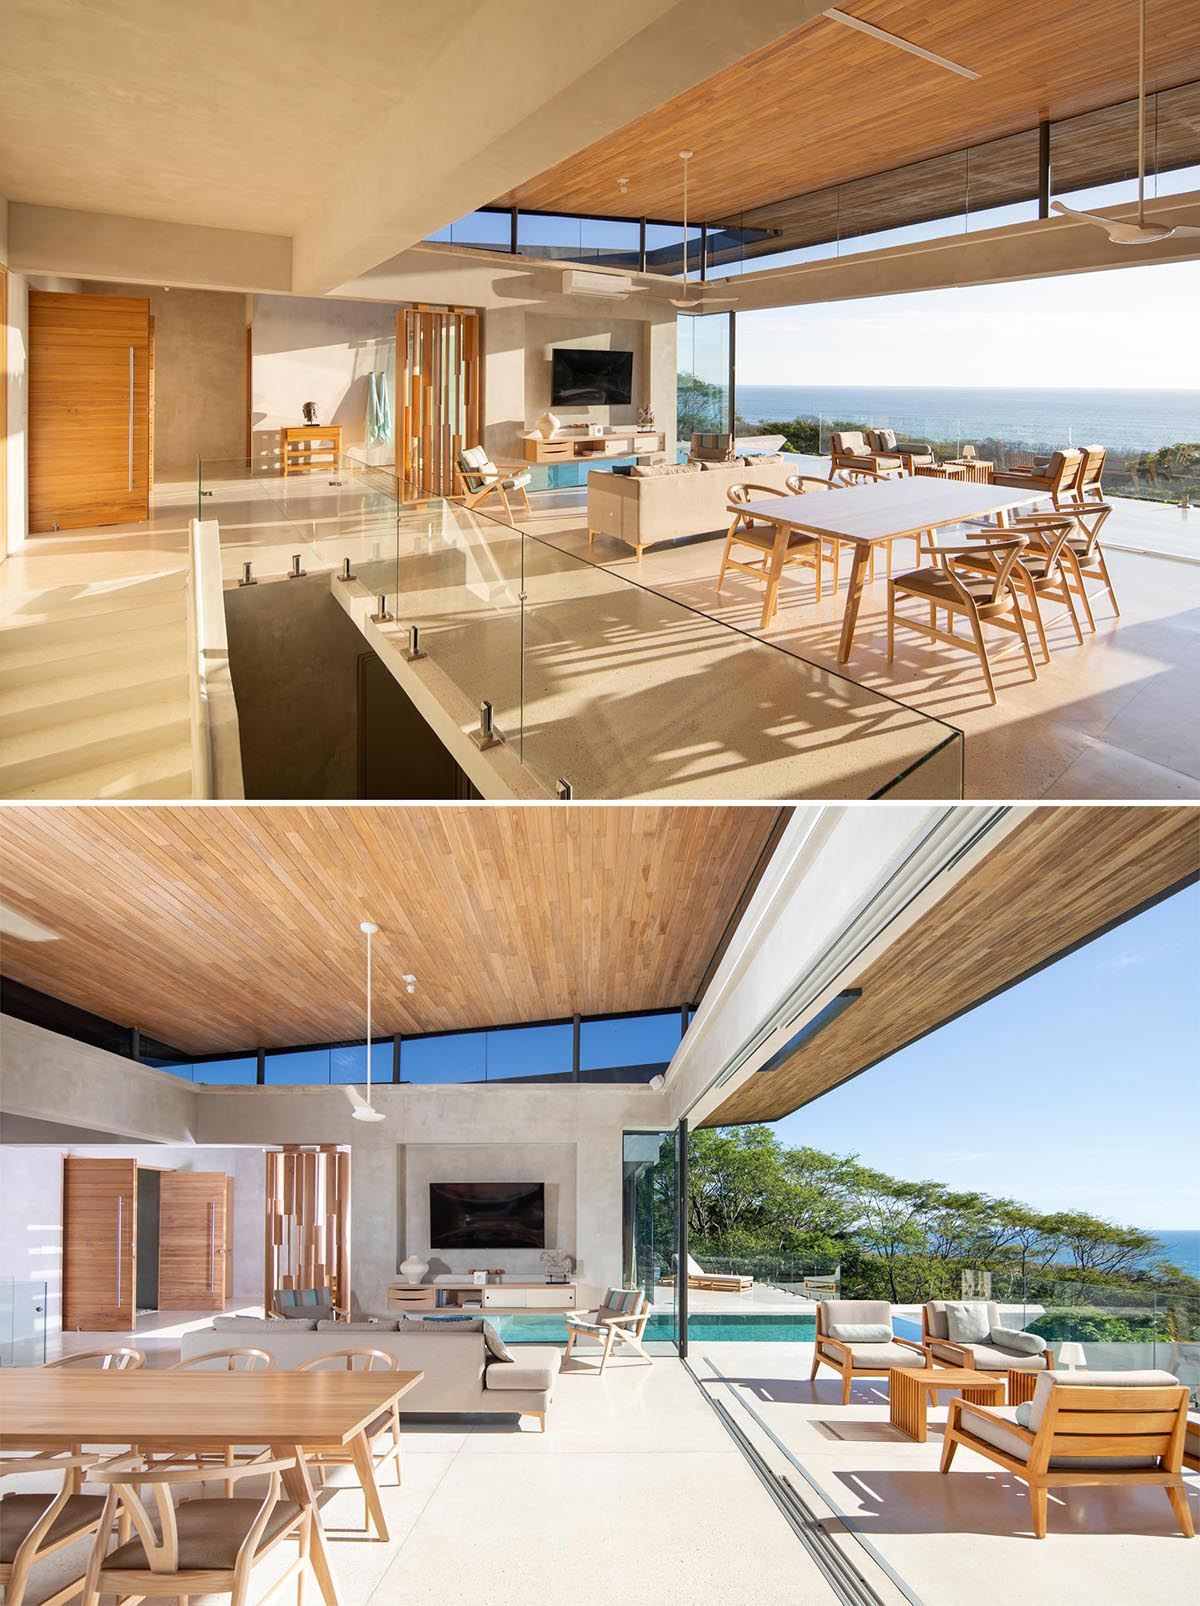 Inside this modern home, the main social areas include an open floor plan with the large wood ceiling floating over the space.